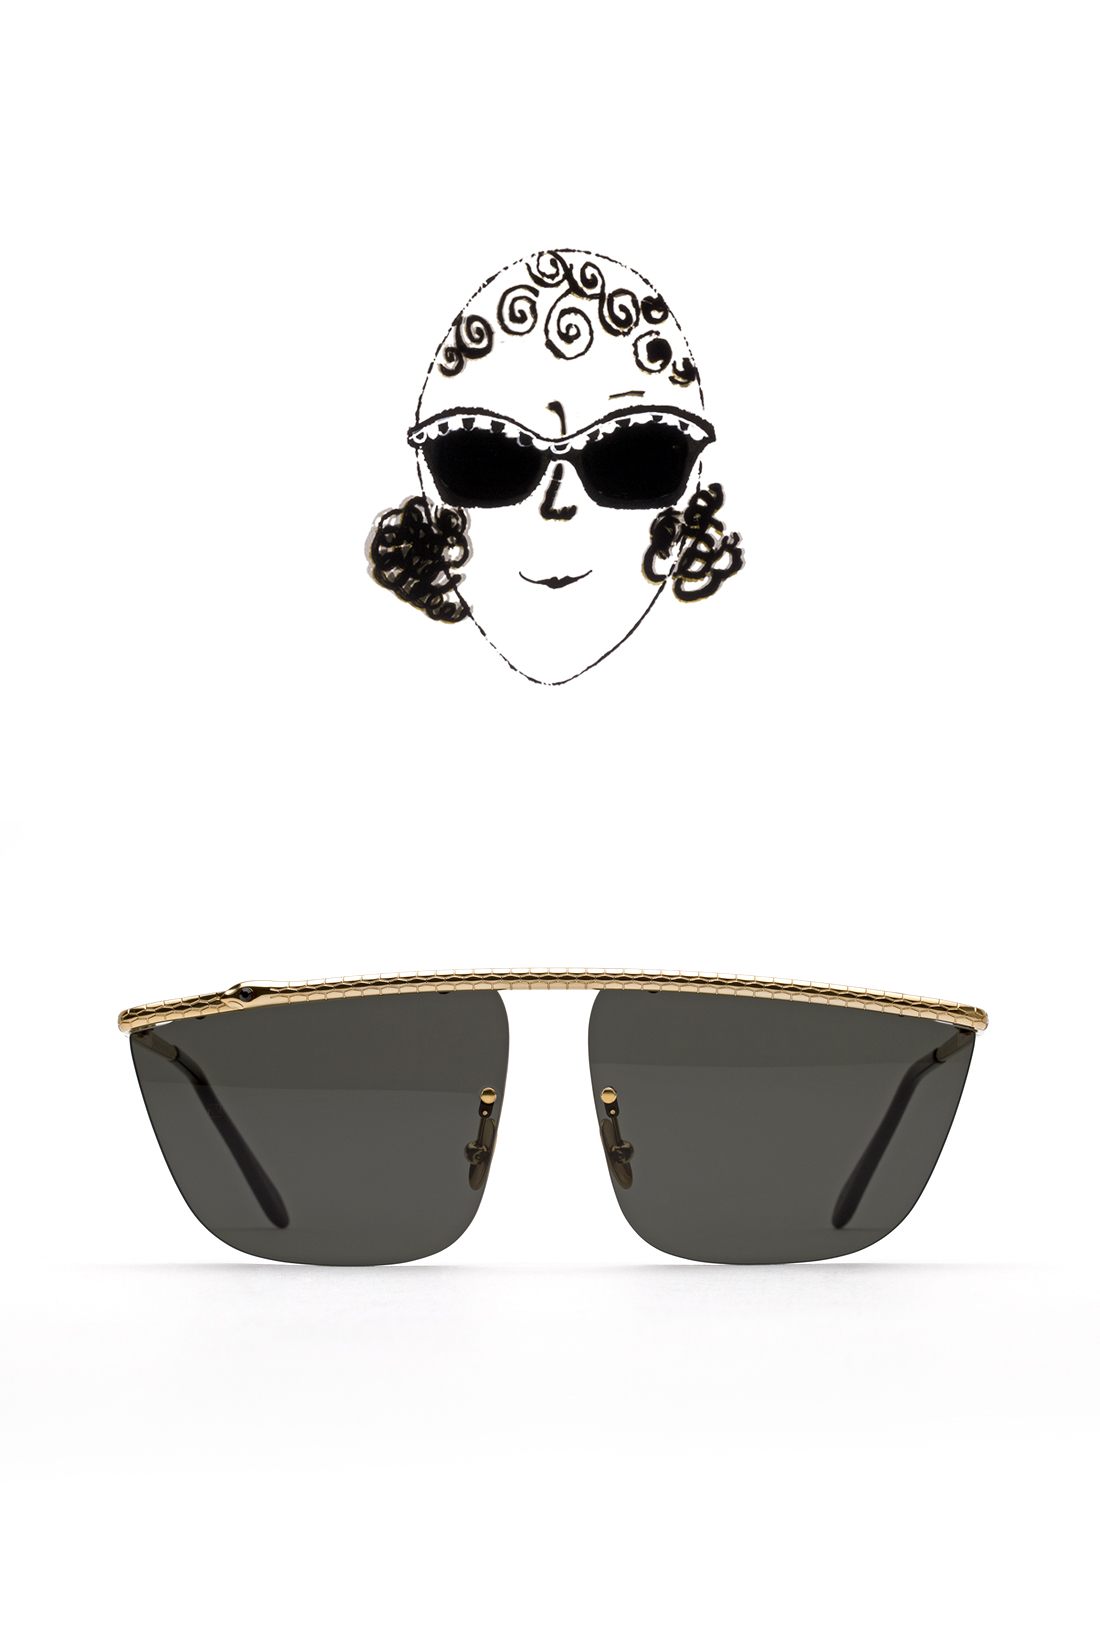 andy-warhol-retrosuperfuture-sunglasses-04